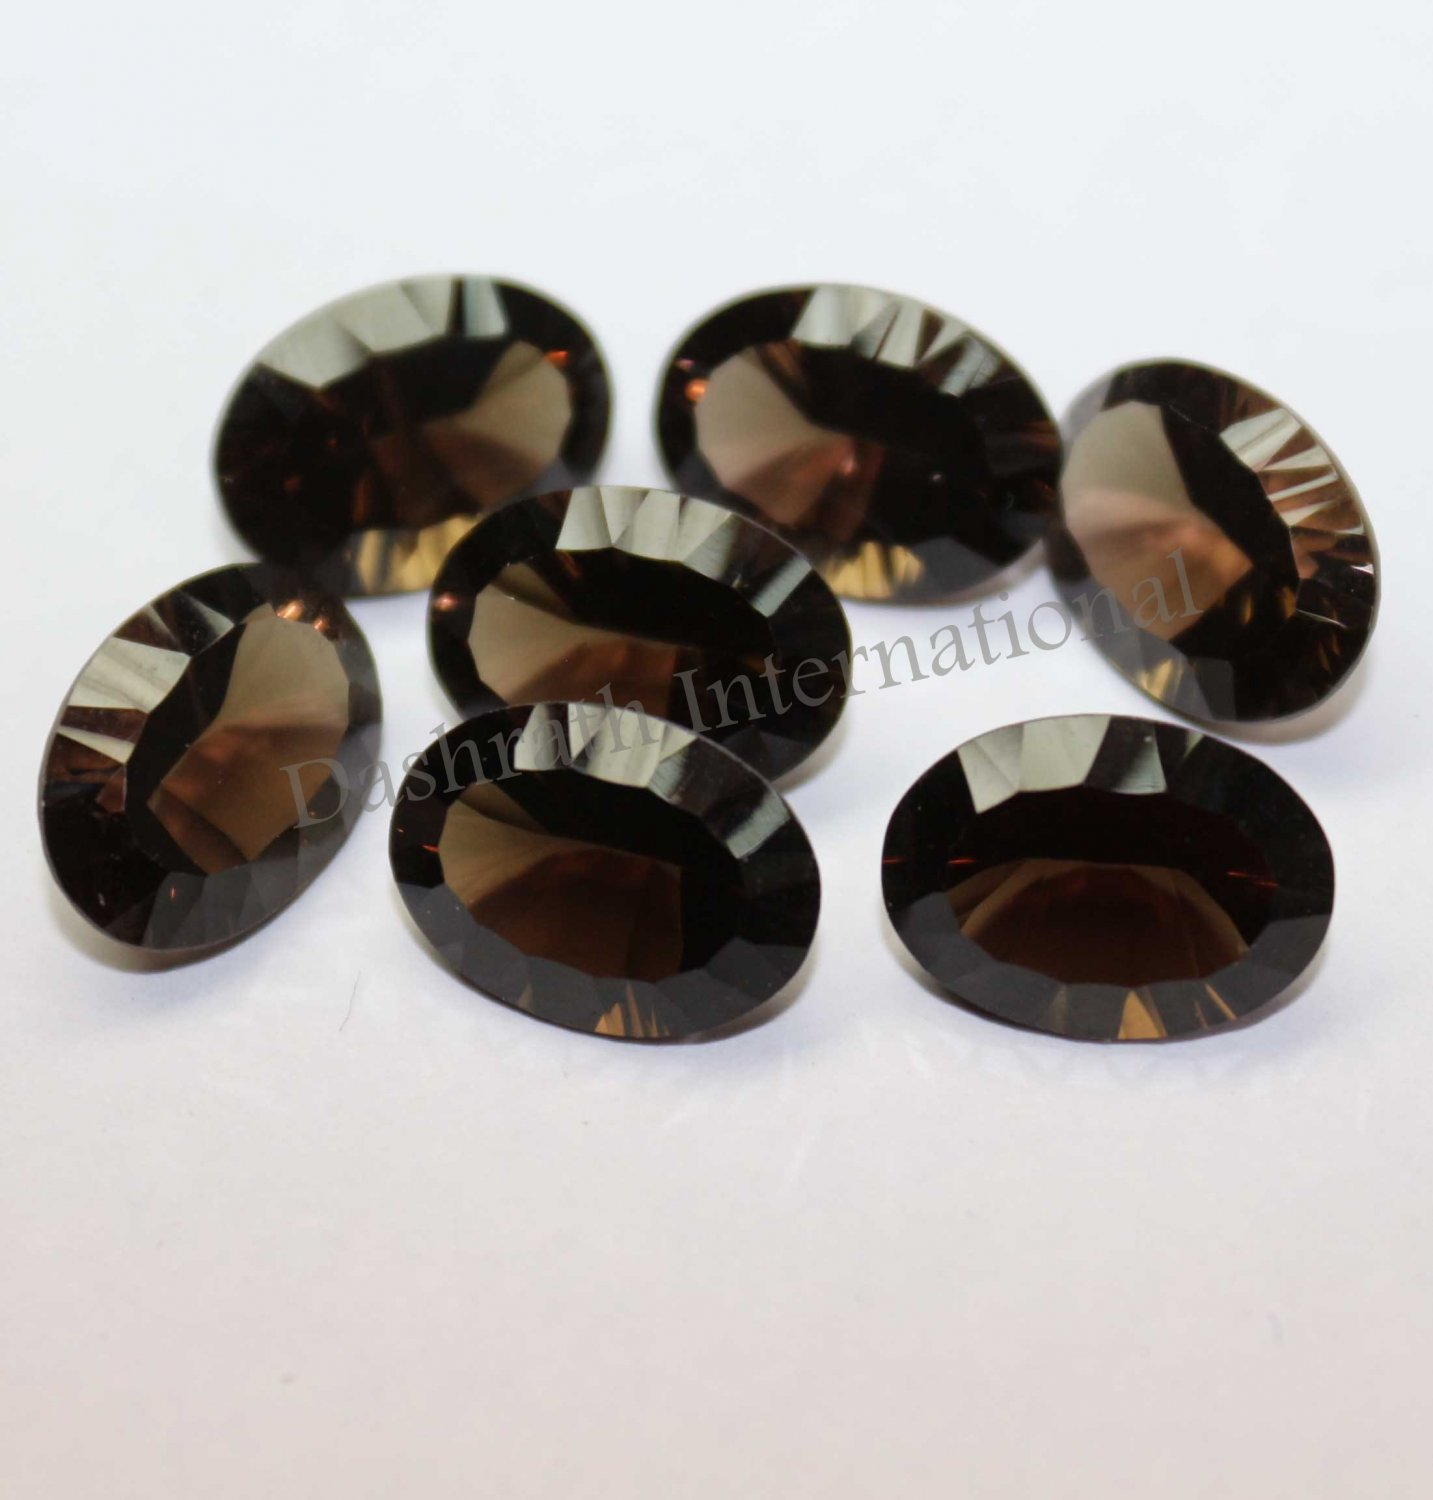 10x12mm Natural Smoky Quartz Concave Cut  Oval  75 Pieces Lot  (SI) Top Quality  Loose Gemstone